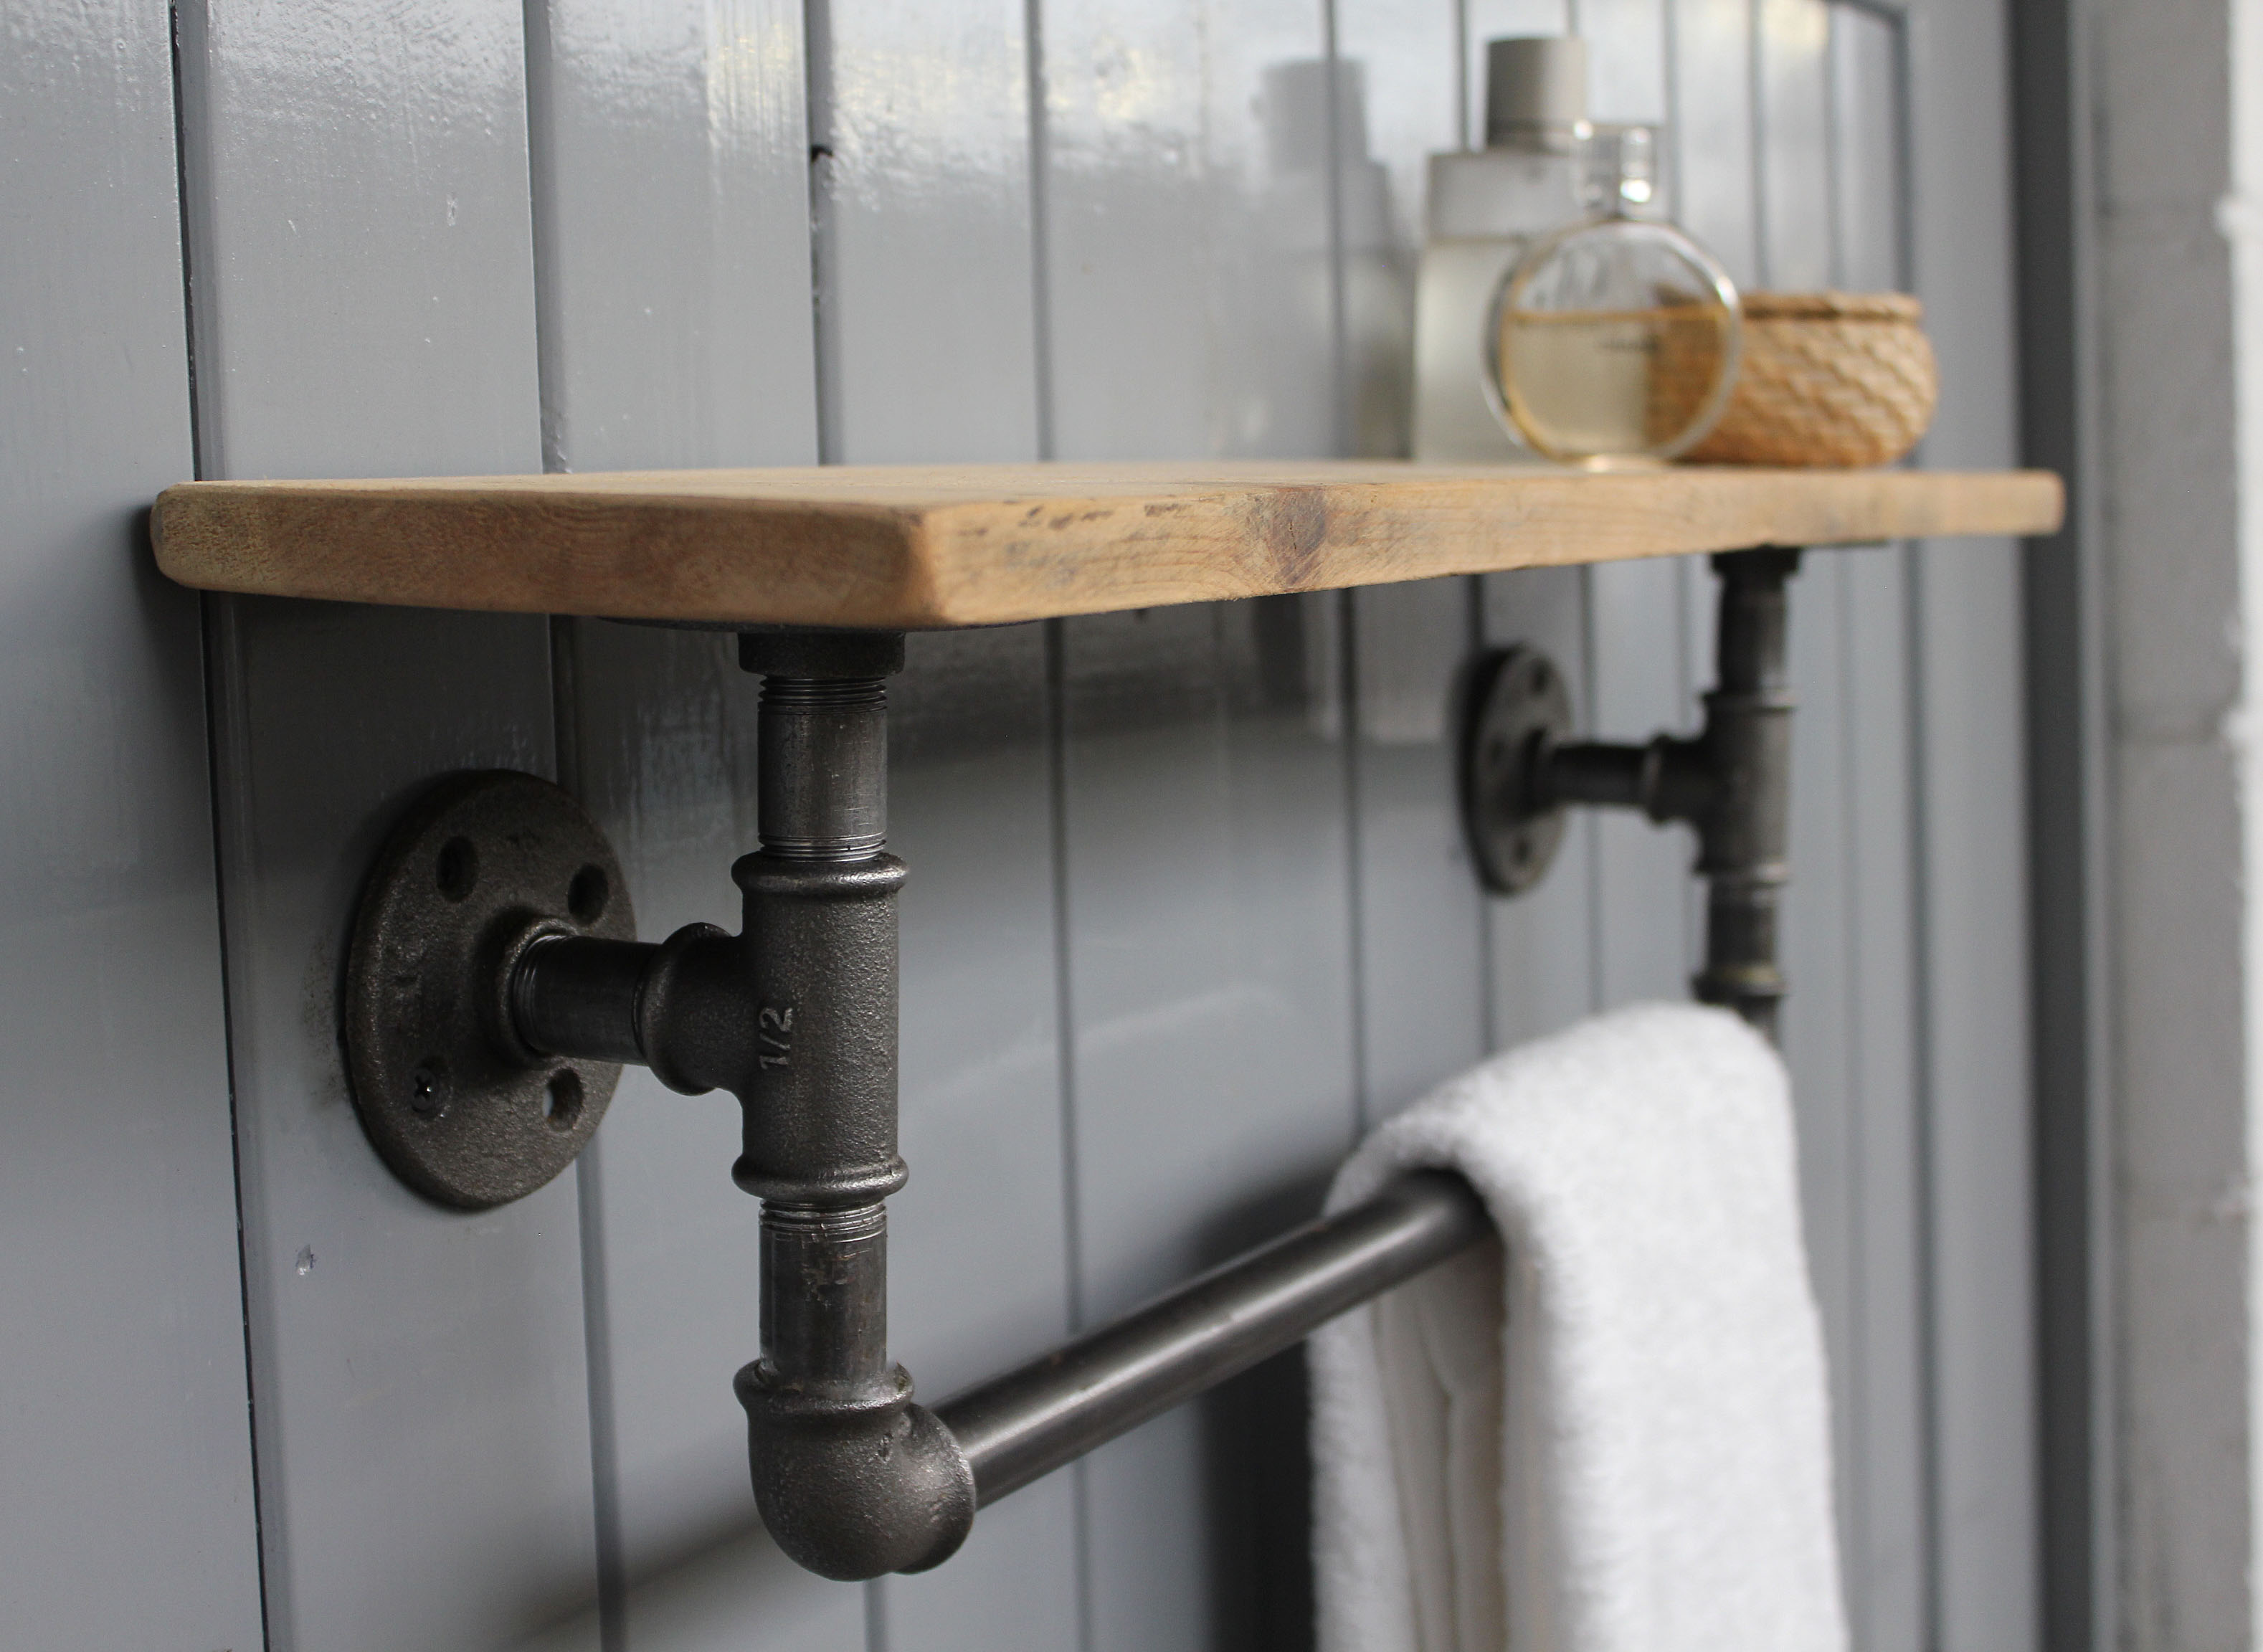 Industrial Steel Pipes : Industrial steel pipe storage shelf möa design